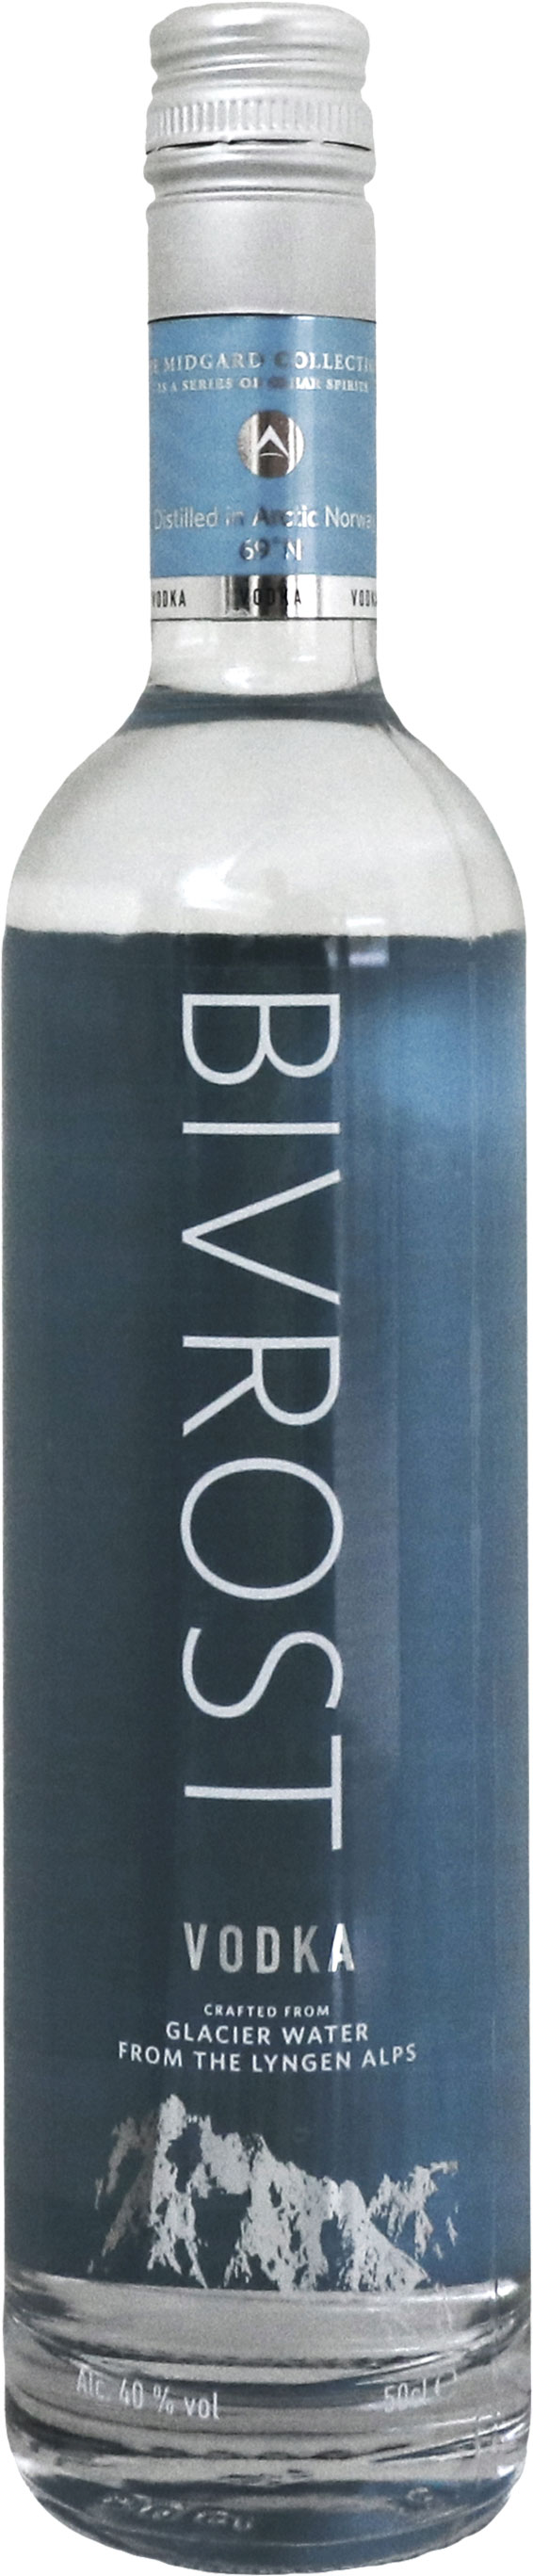 Bivrost - Vodka 50cl Bottle